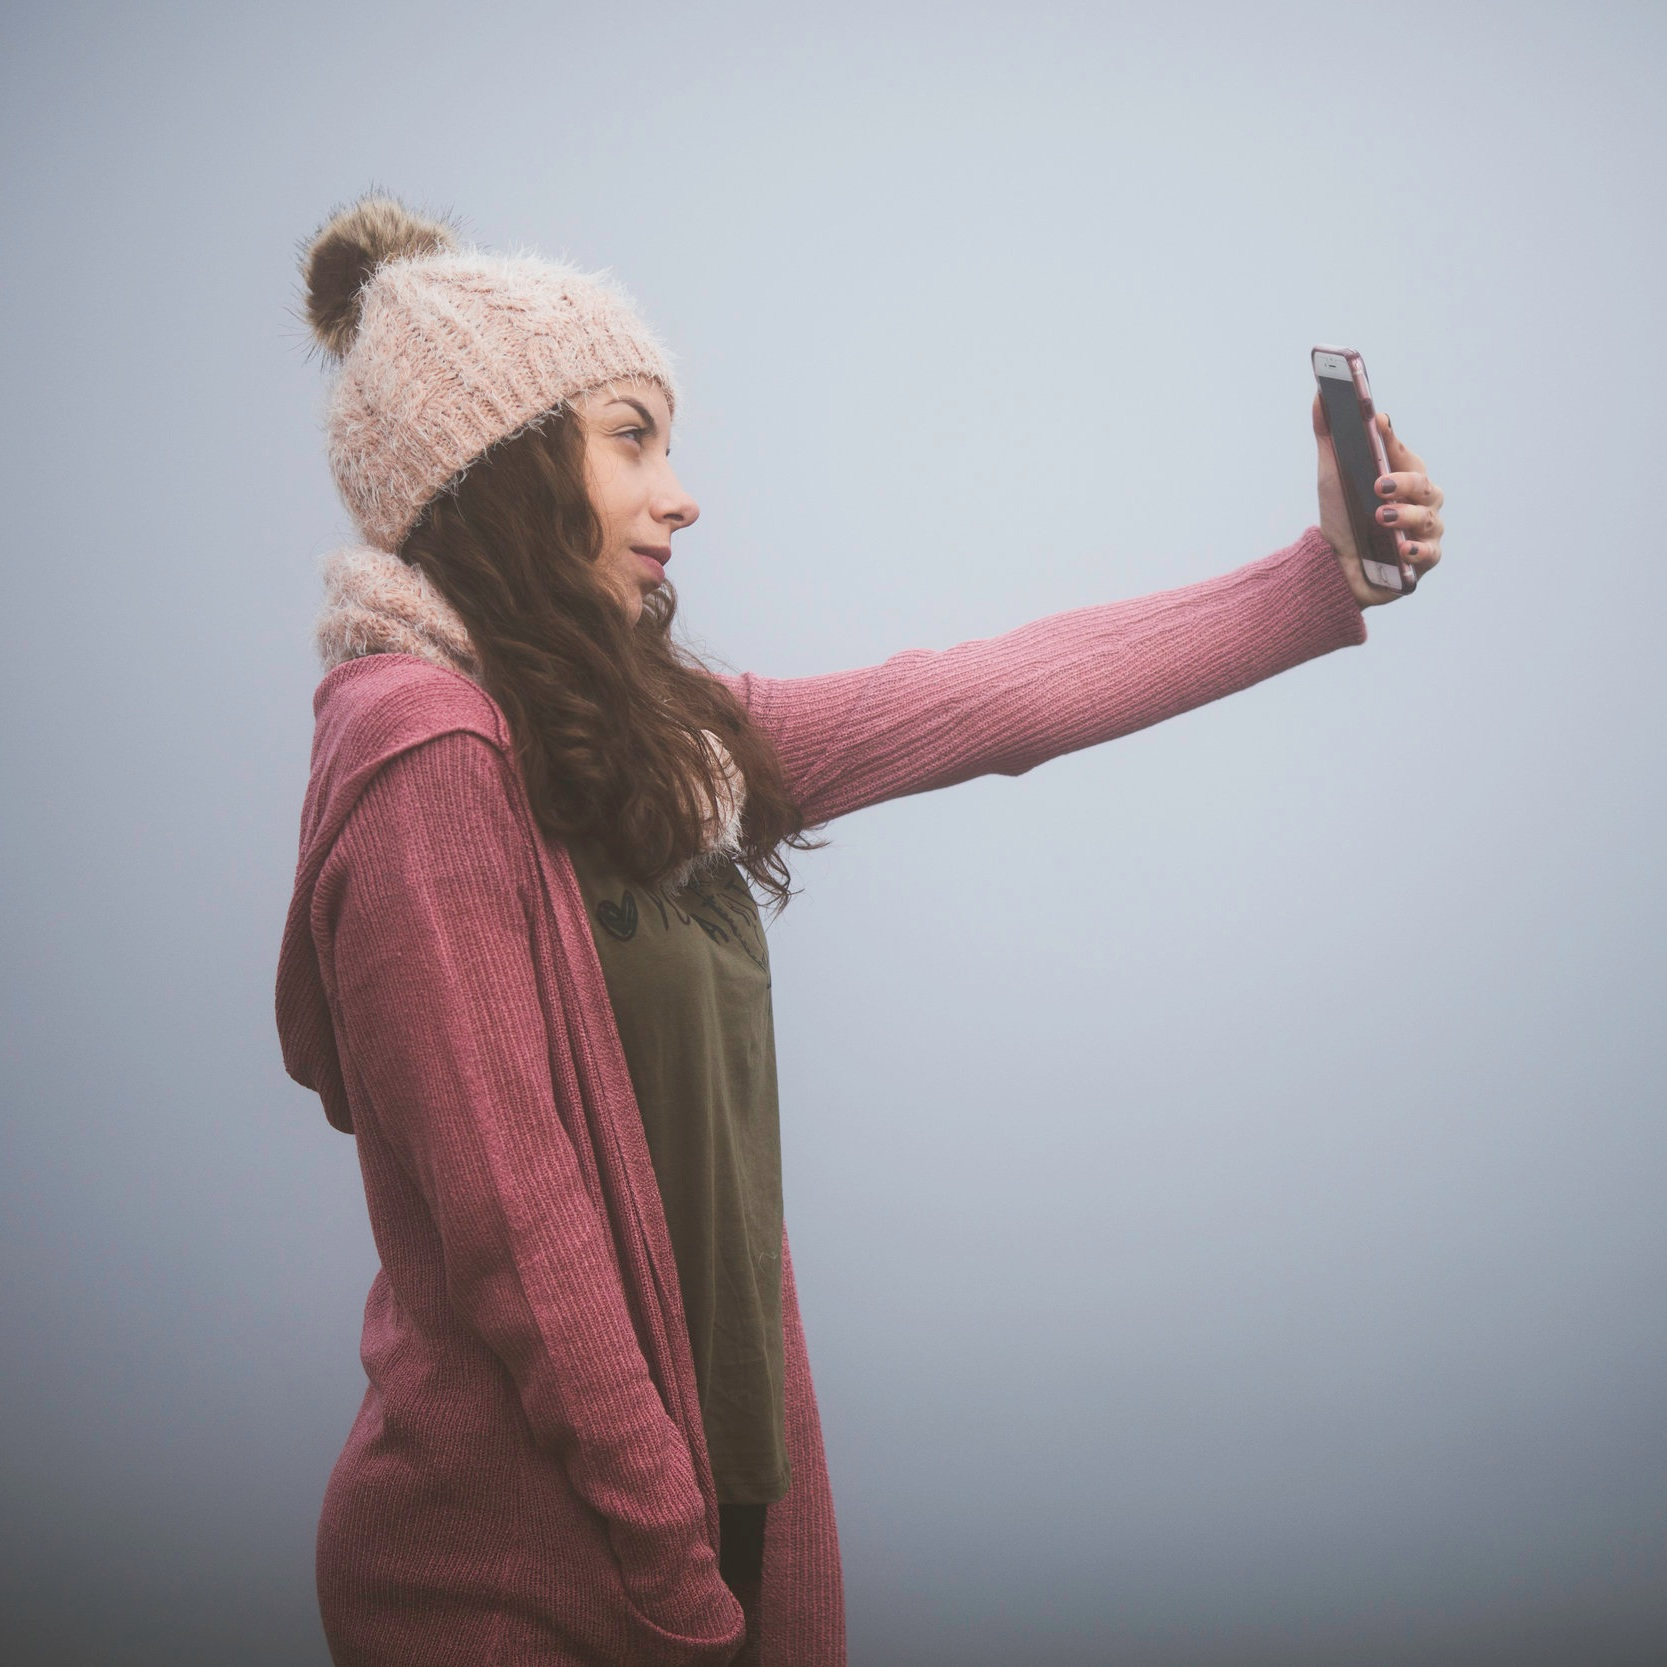 TAKE PHOTOS - Take front and side photos of your face.